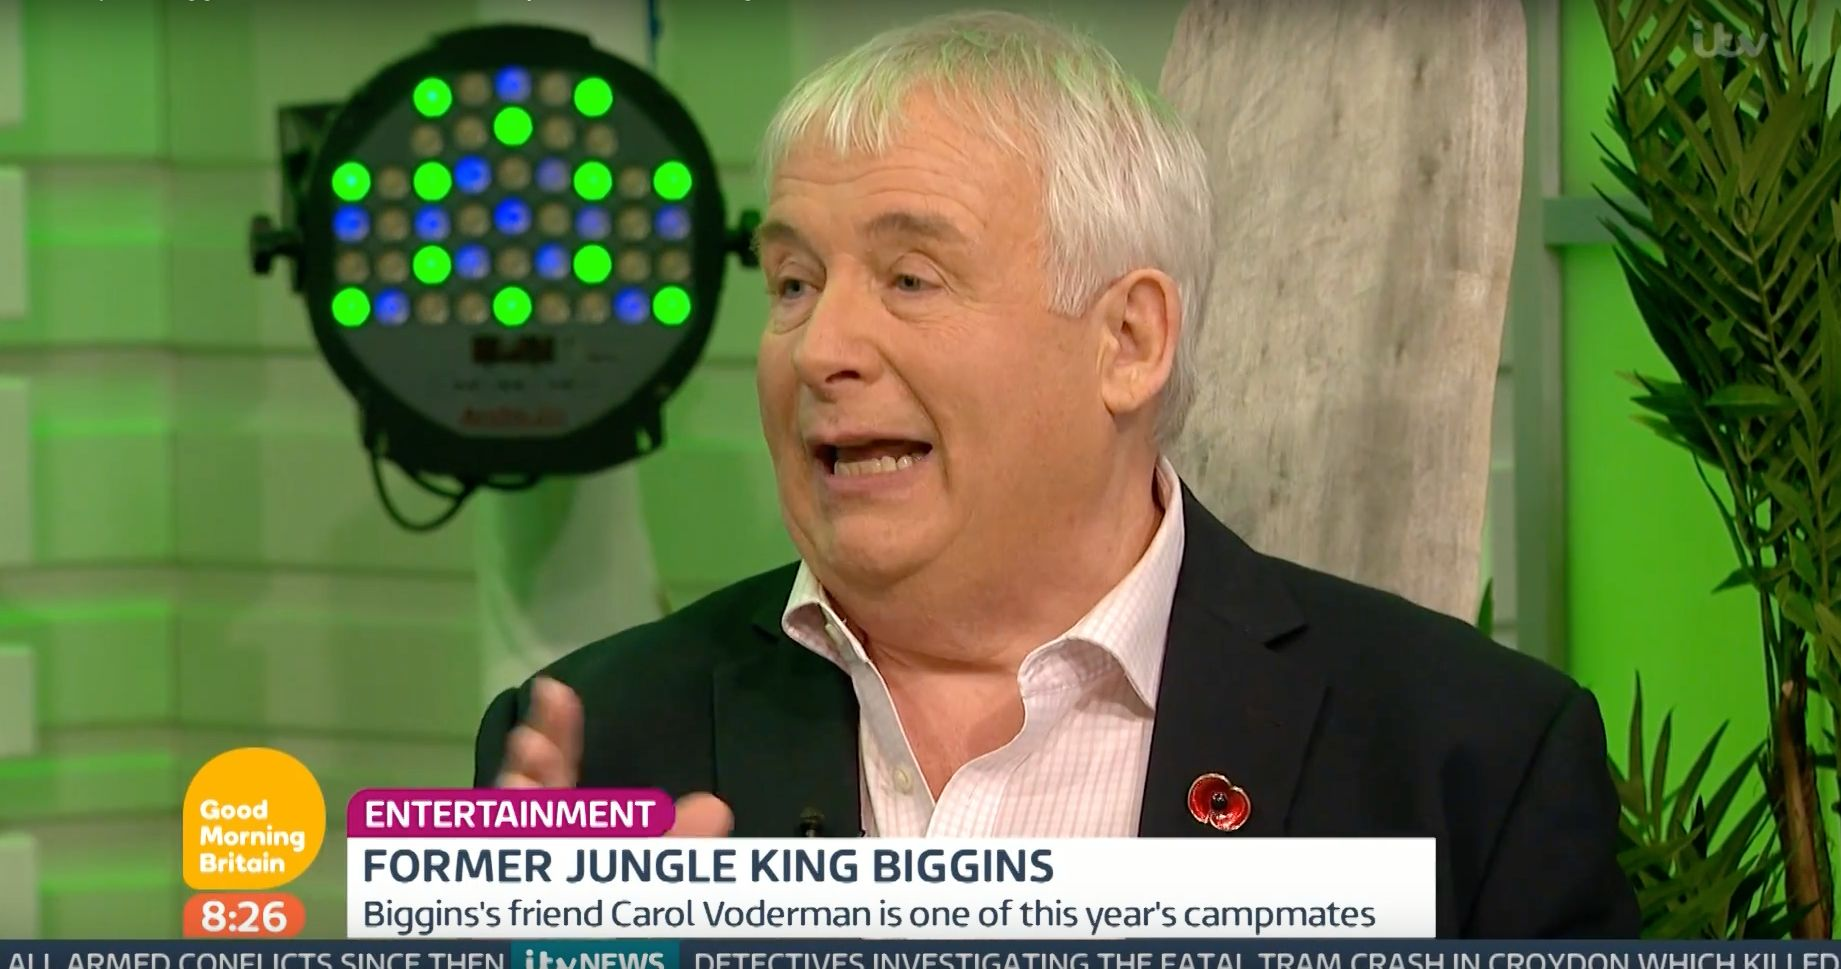 Christopher Biggins Makes First TV Appearance Since 'Celebrity Big Brother'